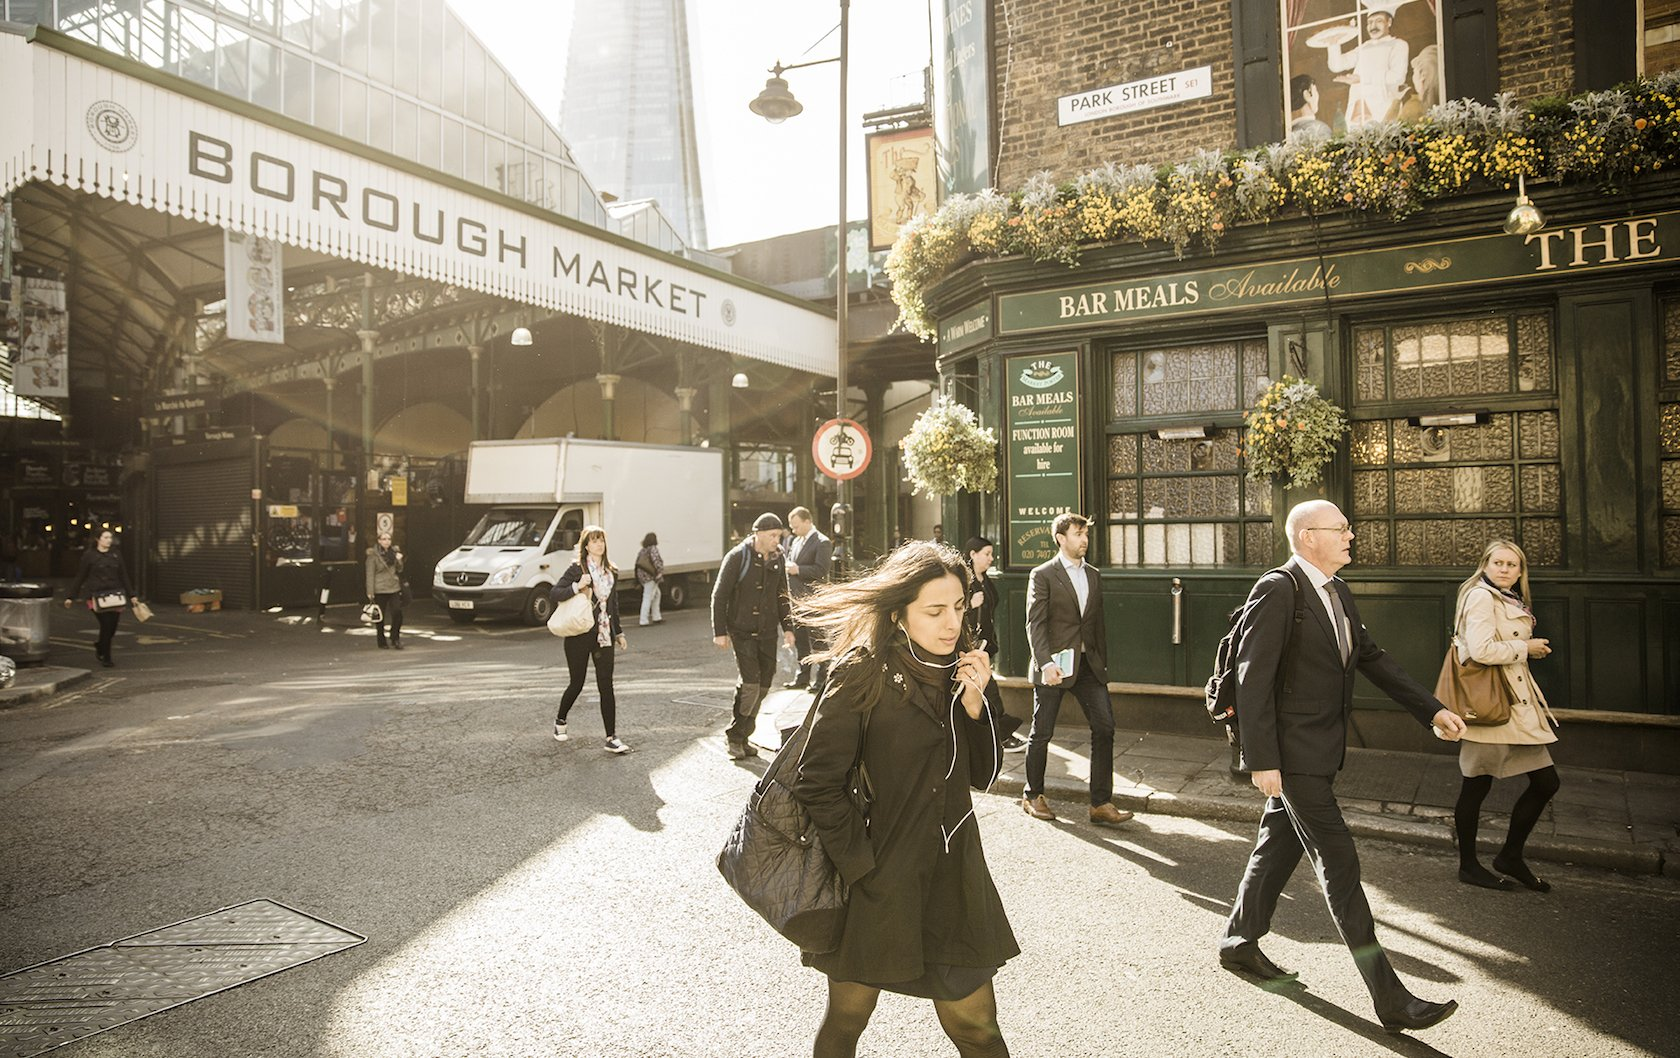 Visiting Borough Market: London's Most Delicious Destination